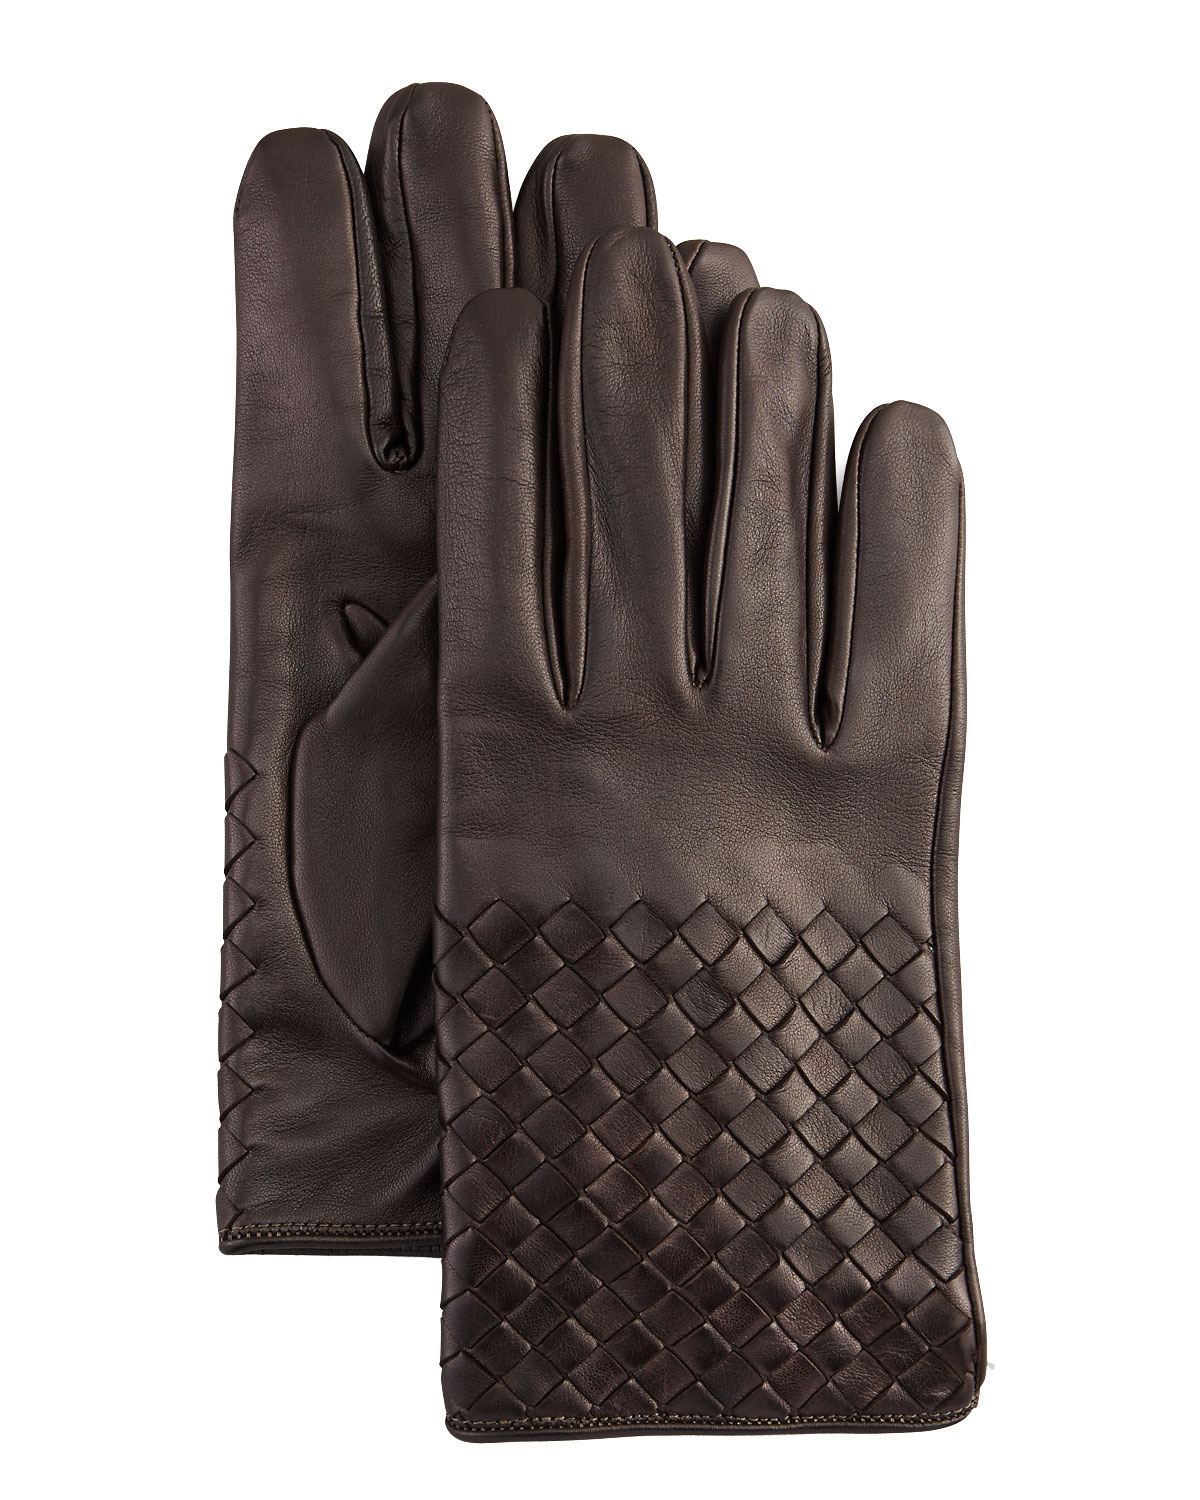 Mens leather gloves xl - Gallery